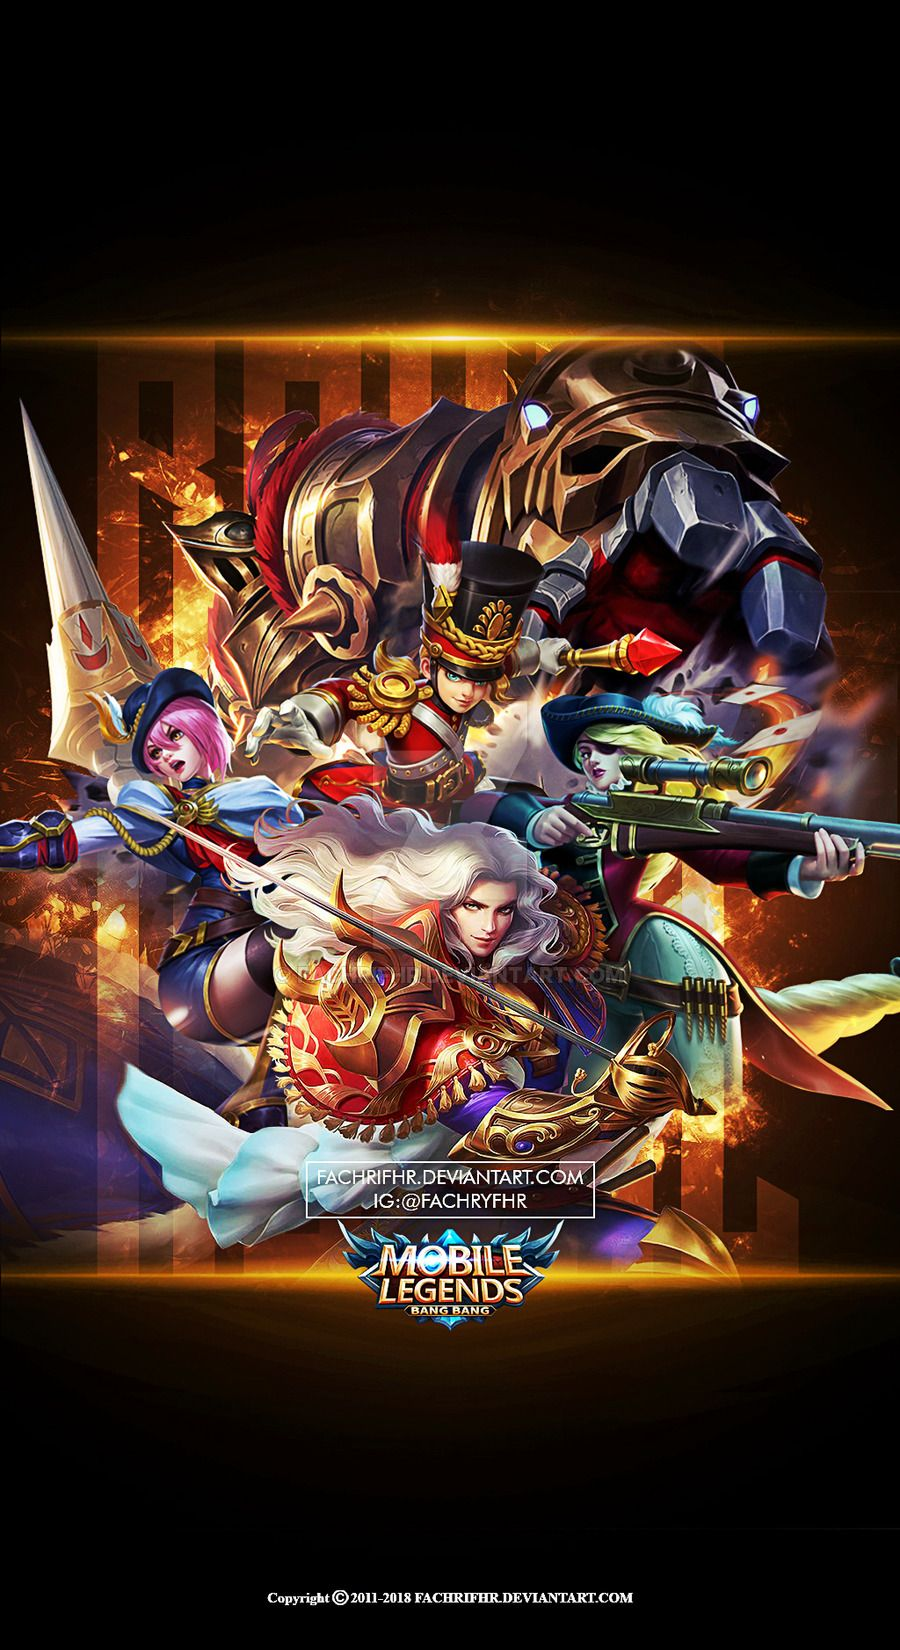 Pin by Christian Semaña on Mobile legends Mobile legend